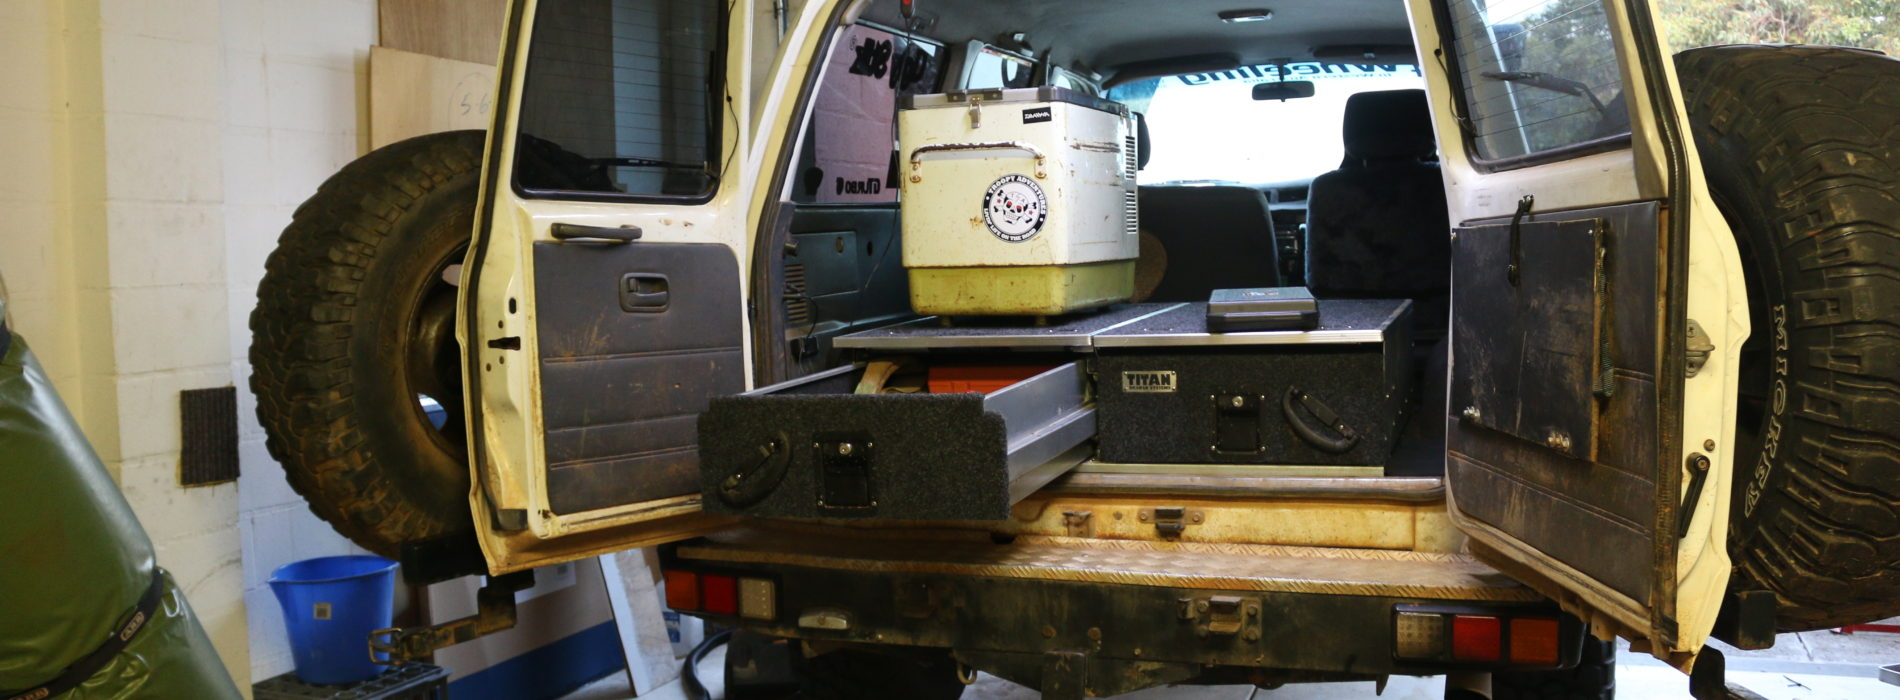 4WD Supa Center TITAN rear drawers: Review